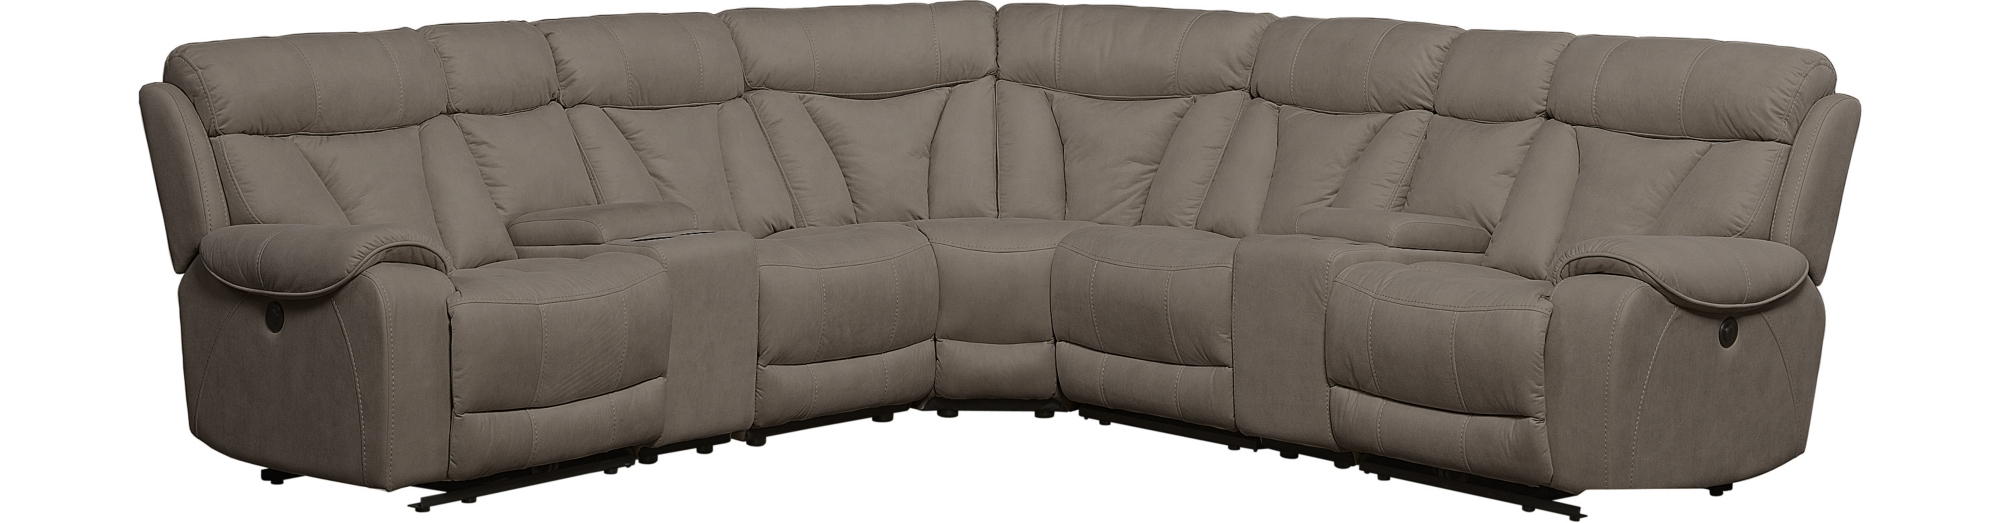 Home Theater Seating Havertys ~ Home Theatre Sectional Sofa